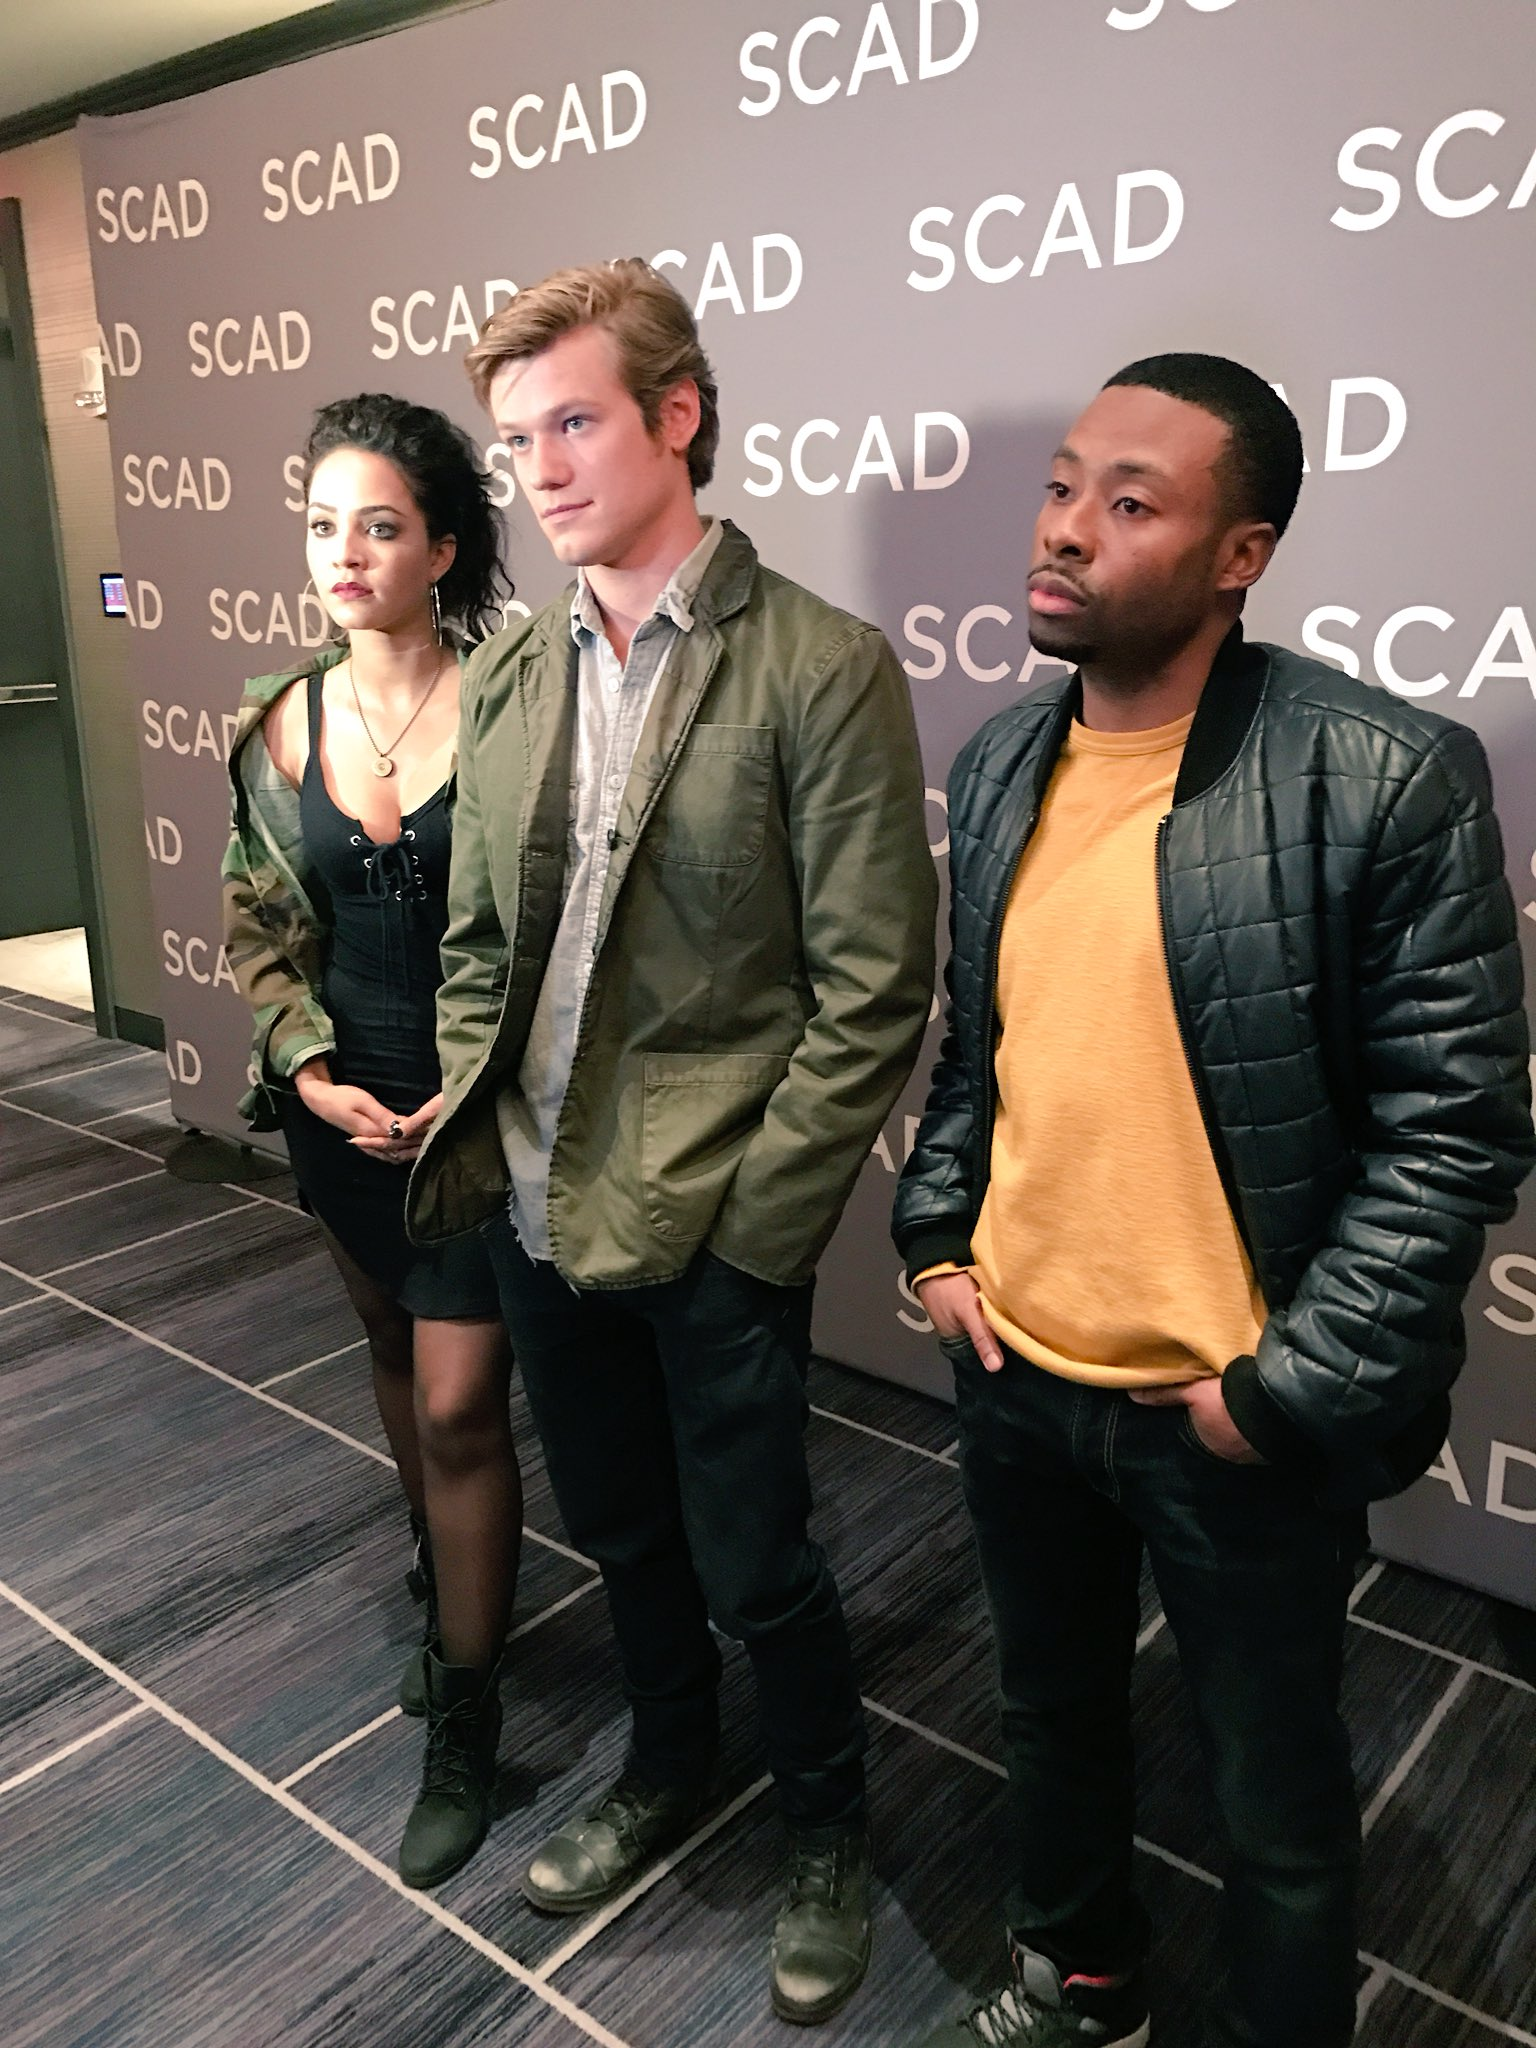 Just wrapped with the cast of @MacGyverCBS!!! One of my favorite interview ever. Love this cast!! #aTVfest https://t.co/9vjxTdmV5A